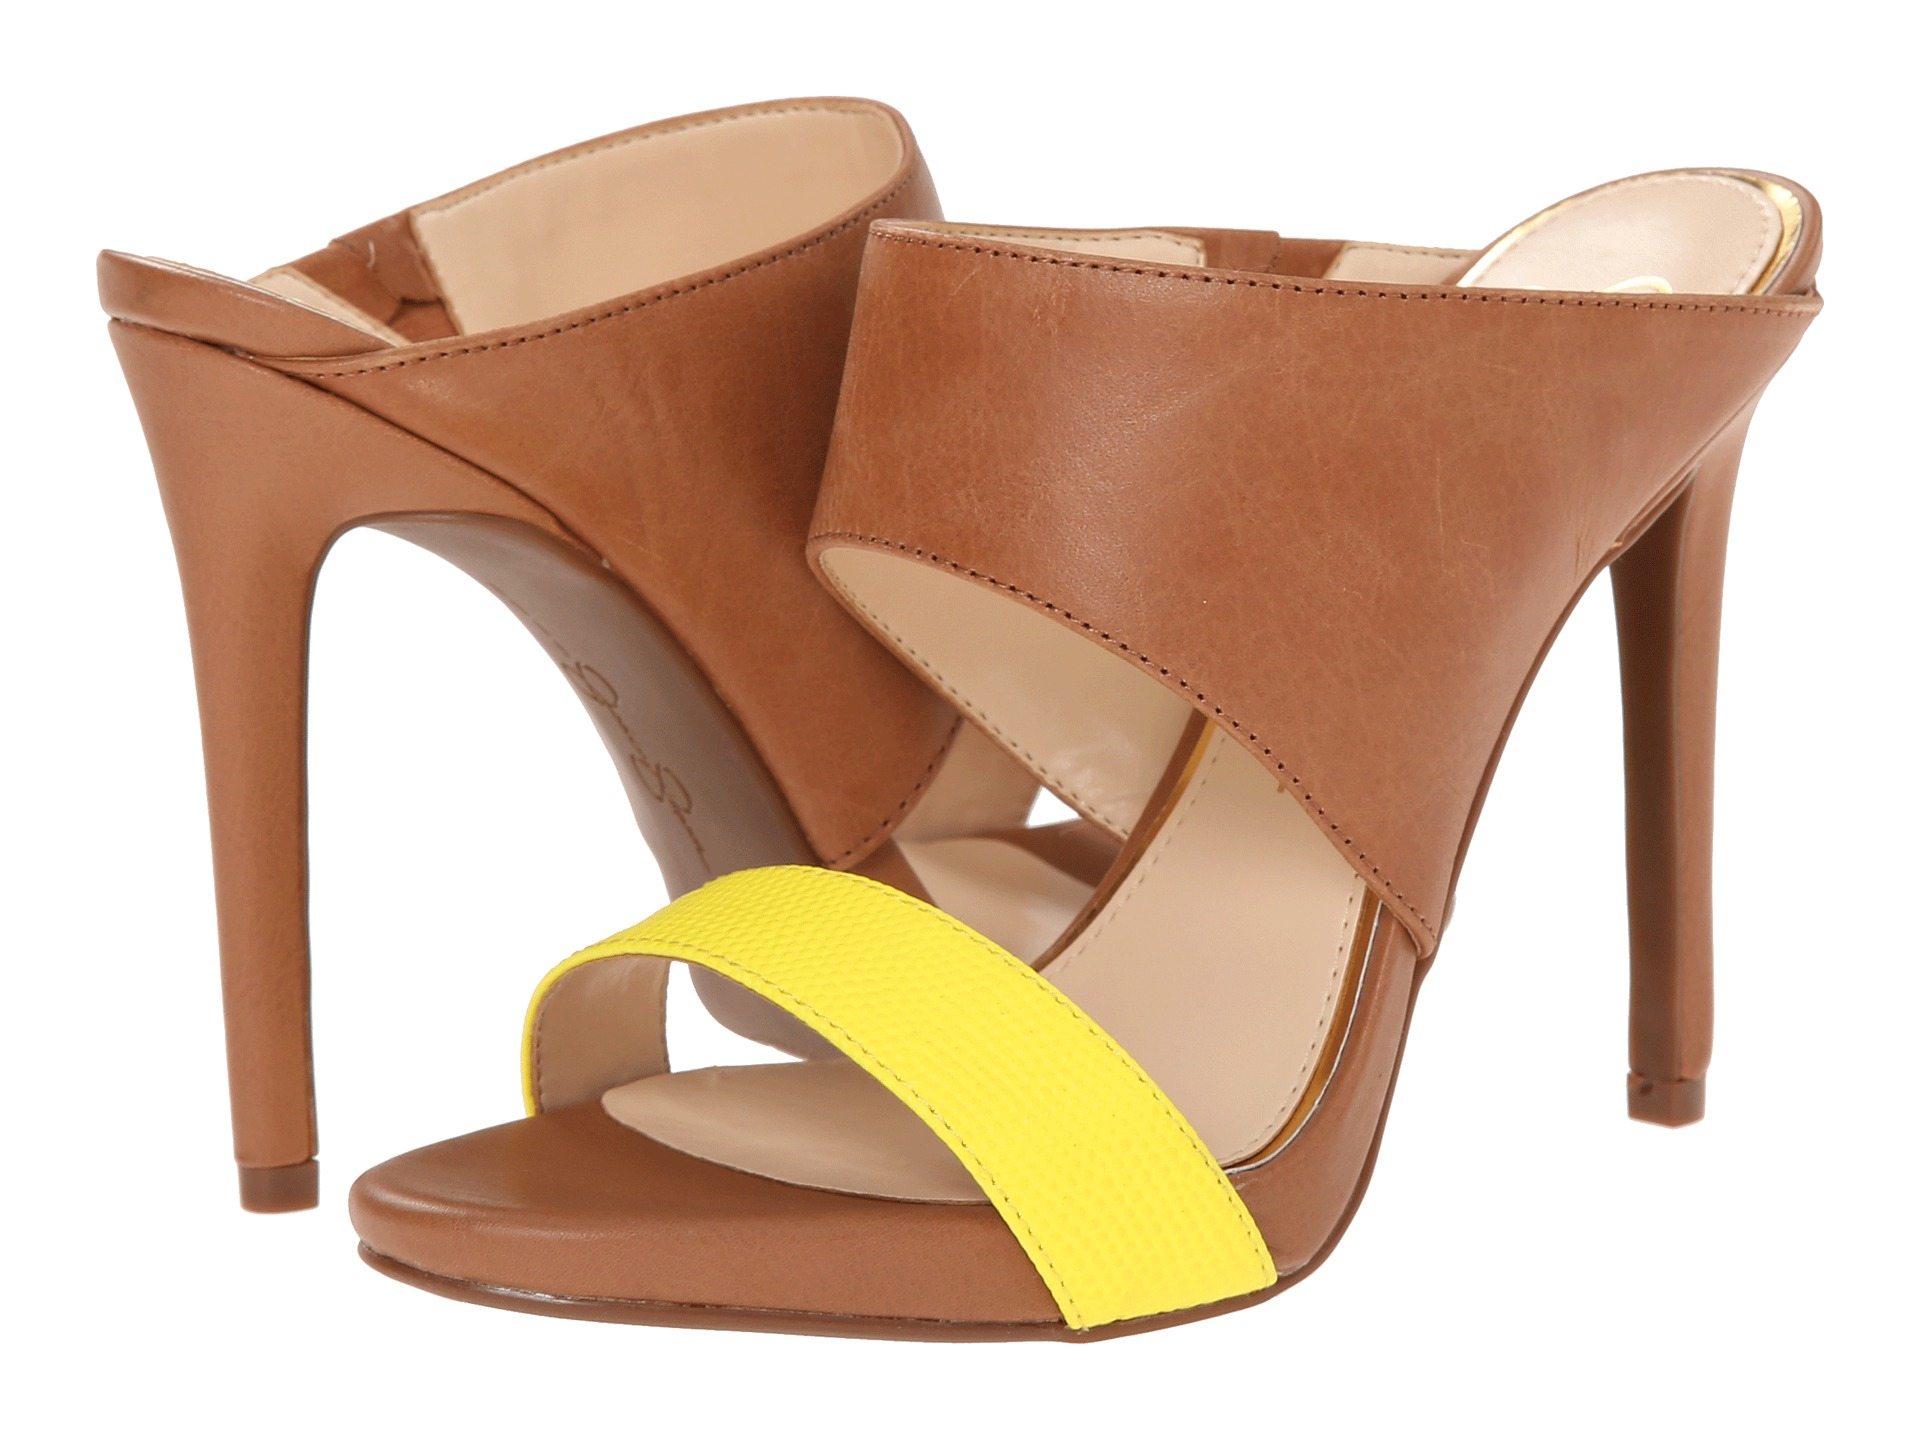 8a34ae4b5b8 Yellow jessica simpson shoes : Payless car rental code